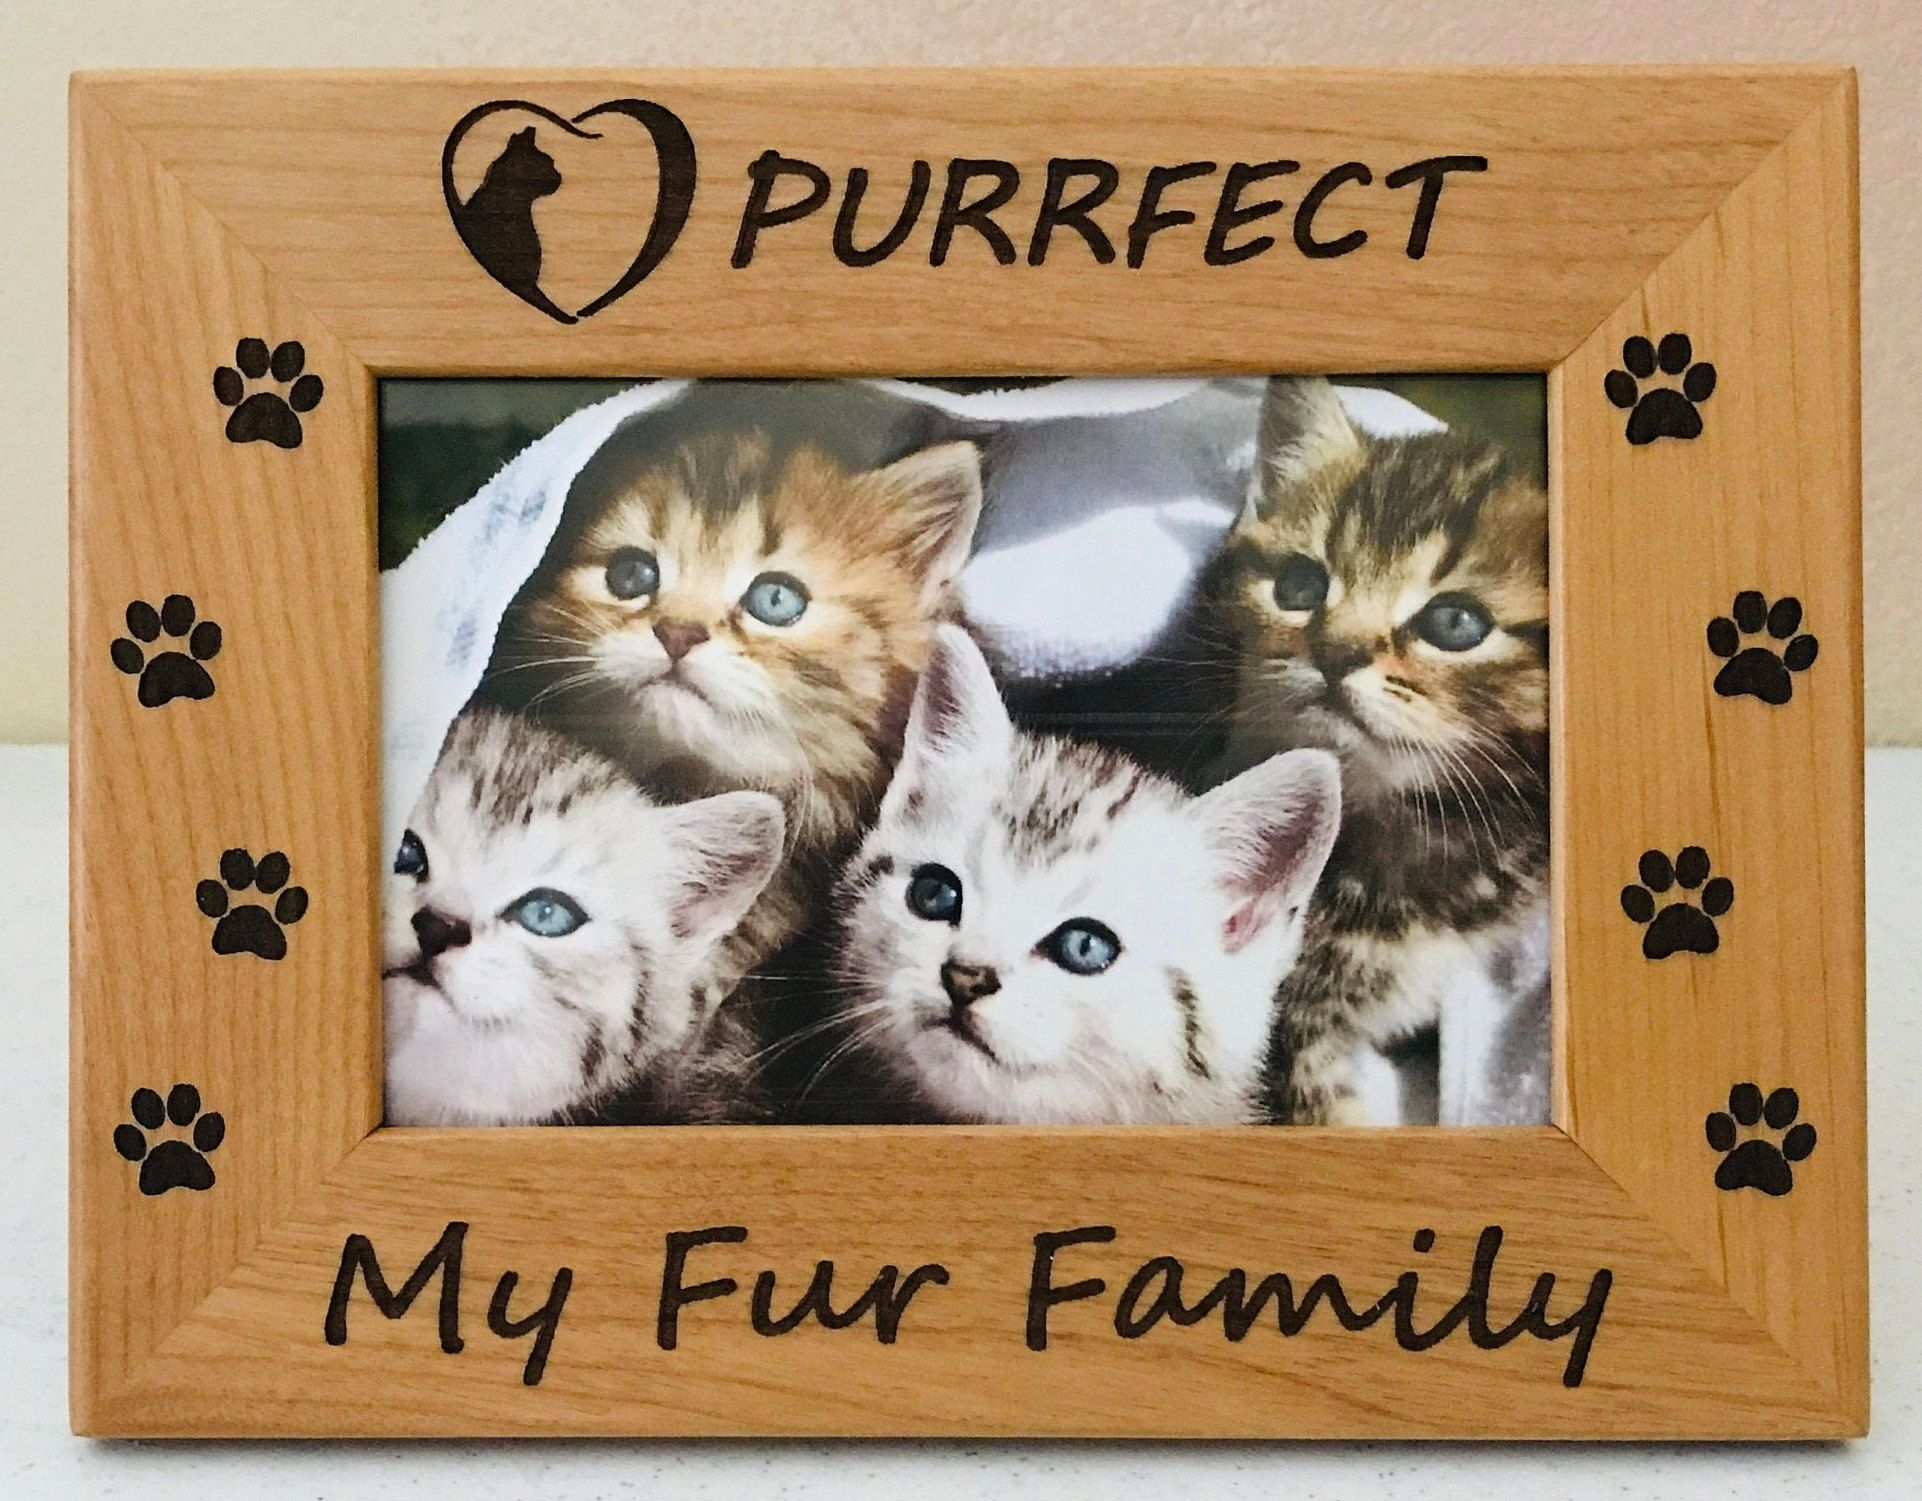 Cat Frame Kitten Picture Frame Gift Cat Photo Photo Frame Cat Lover Gift Cat Photo Frame Cat Gift Kitten Gift Gift For Cat Cat Lover Gifts Kittens Cat Gifts